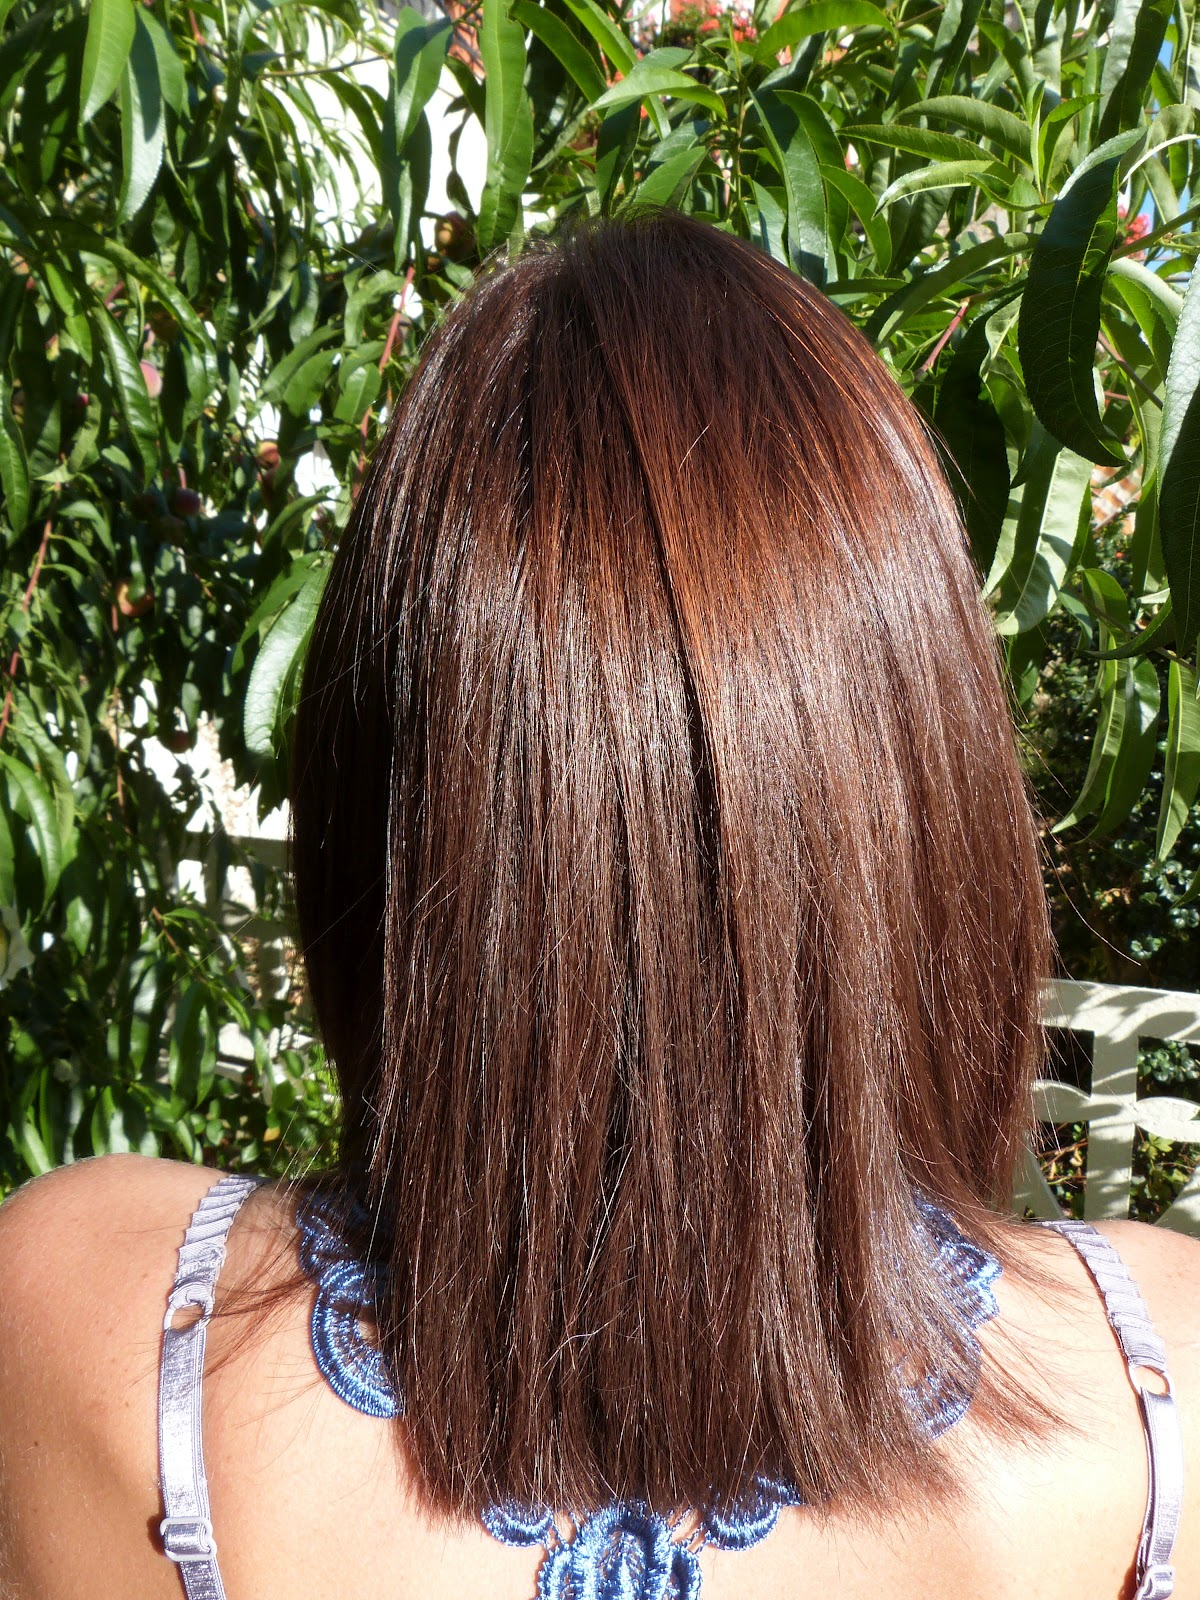 casting crme gloss chocolat sur cheveux chtains mchs miel - Coloration Gloss Chocolat